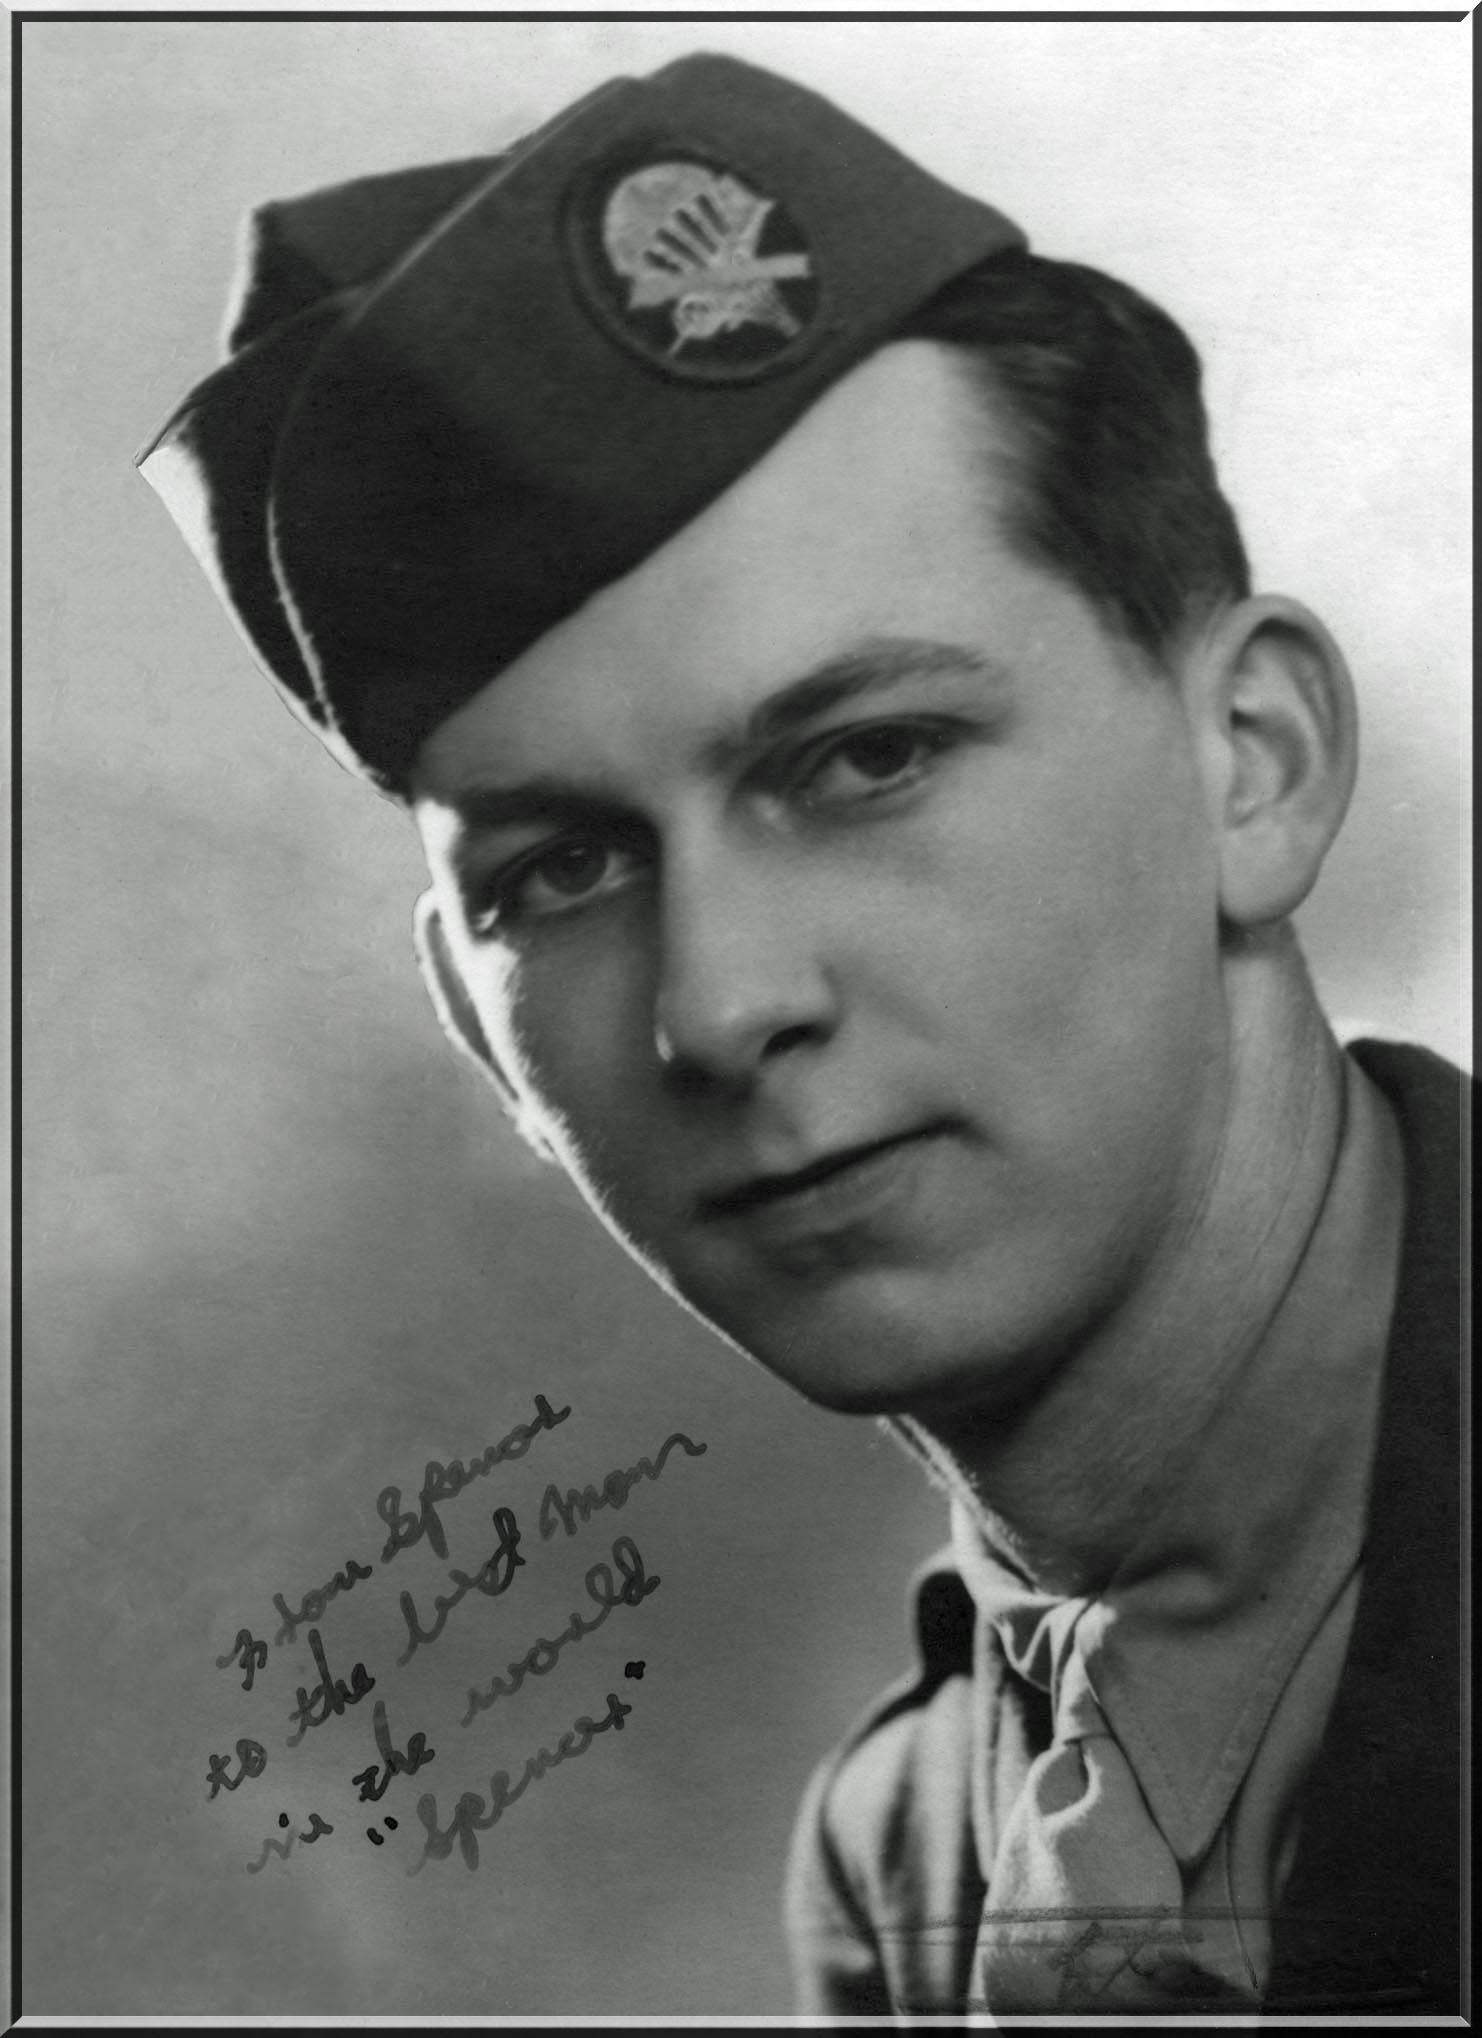 Sgt Spencer Wurst - F Co.